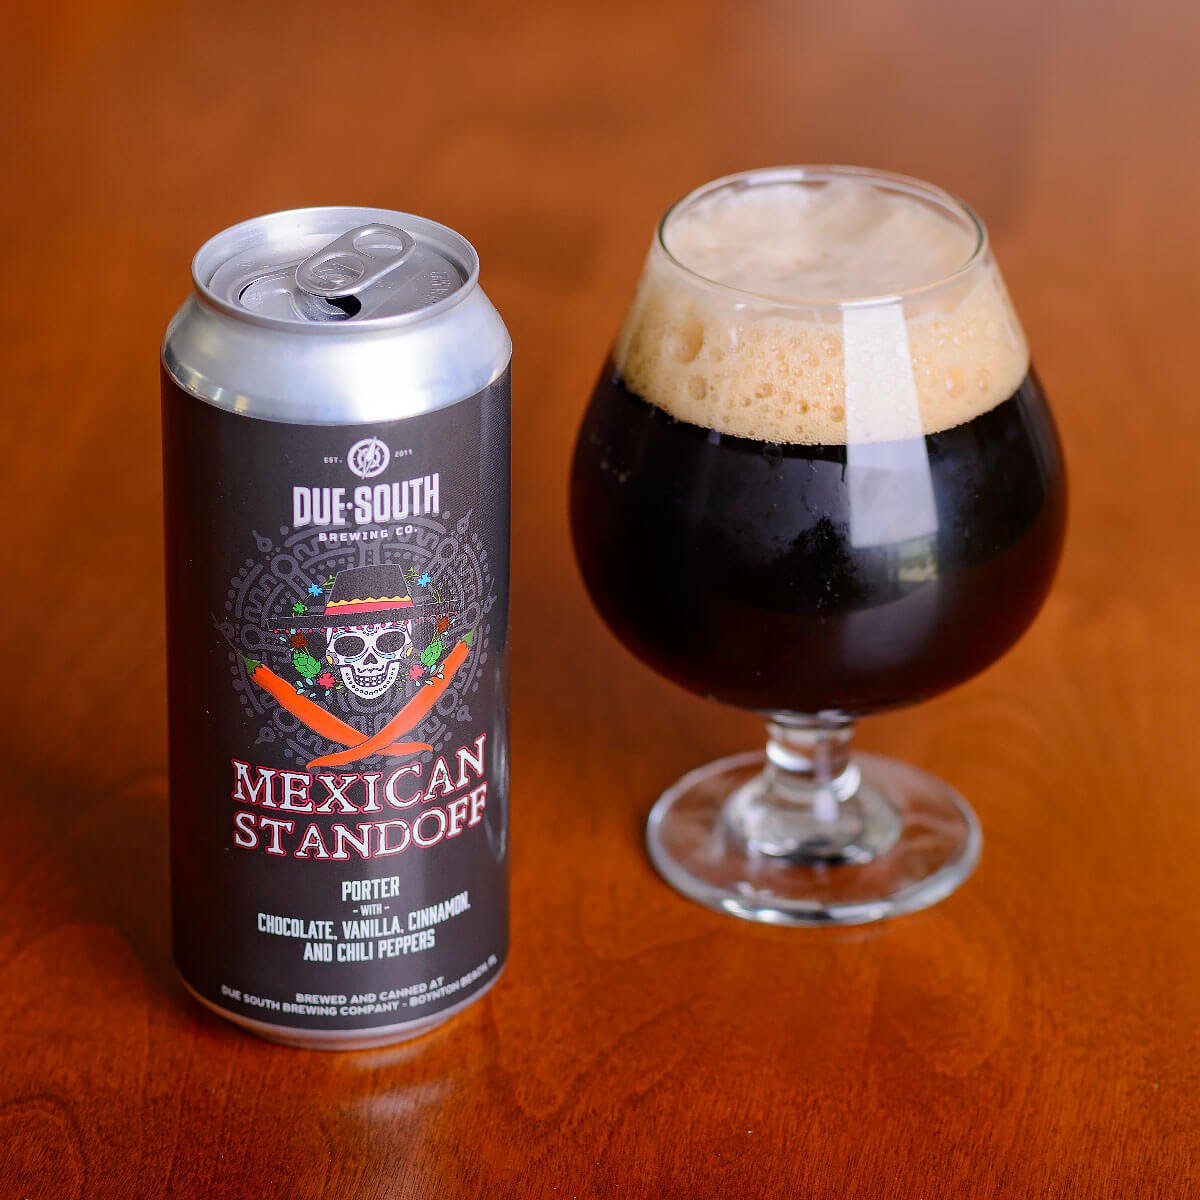 Mexican Standoff, an American Porter by Due South Brewing Co.